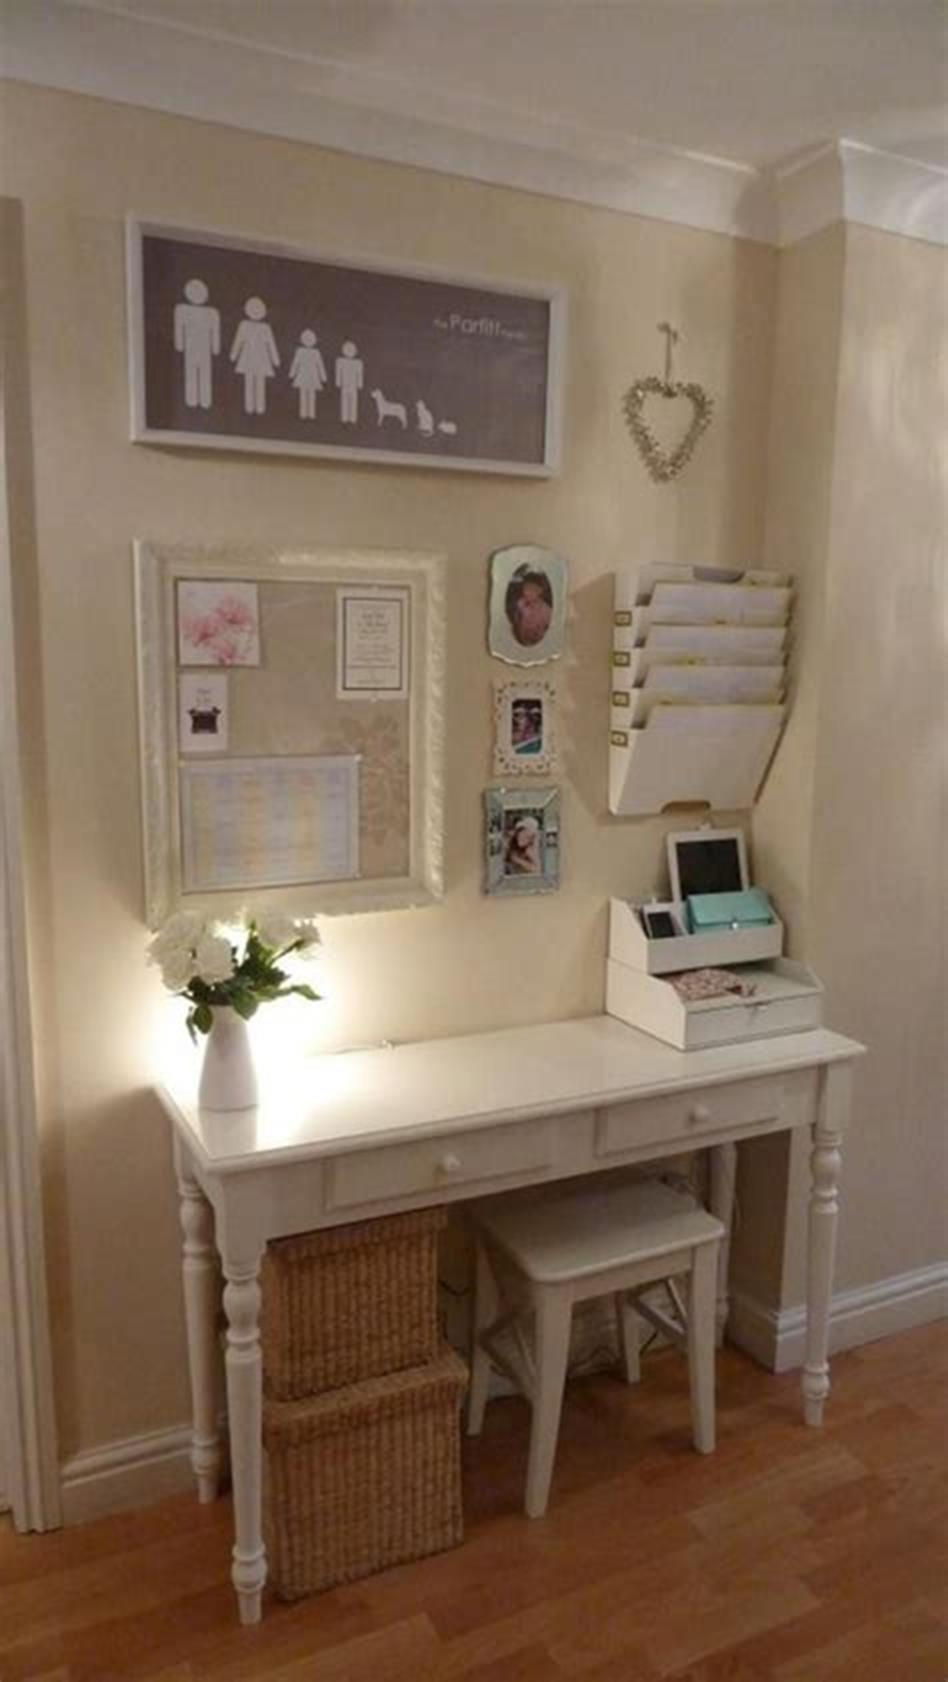 50 Best Small Space Office Decorating Ideas On a Budget 2019 2